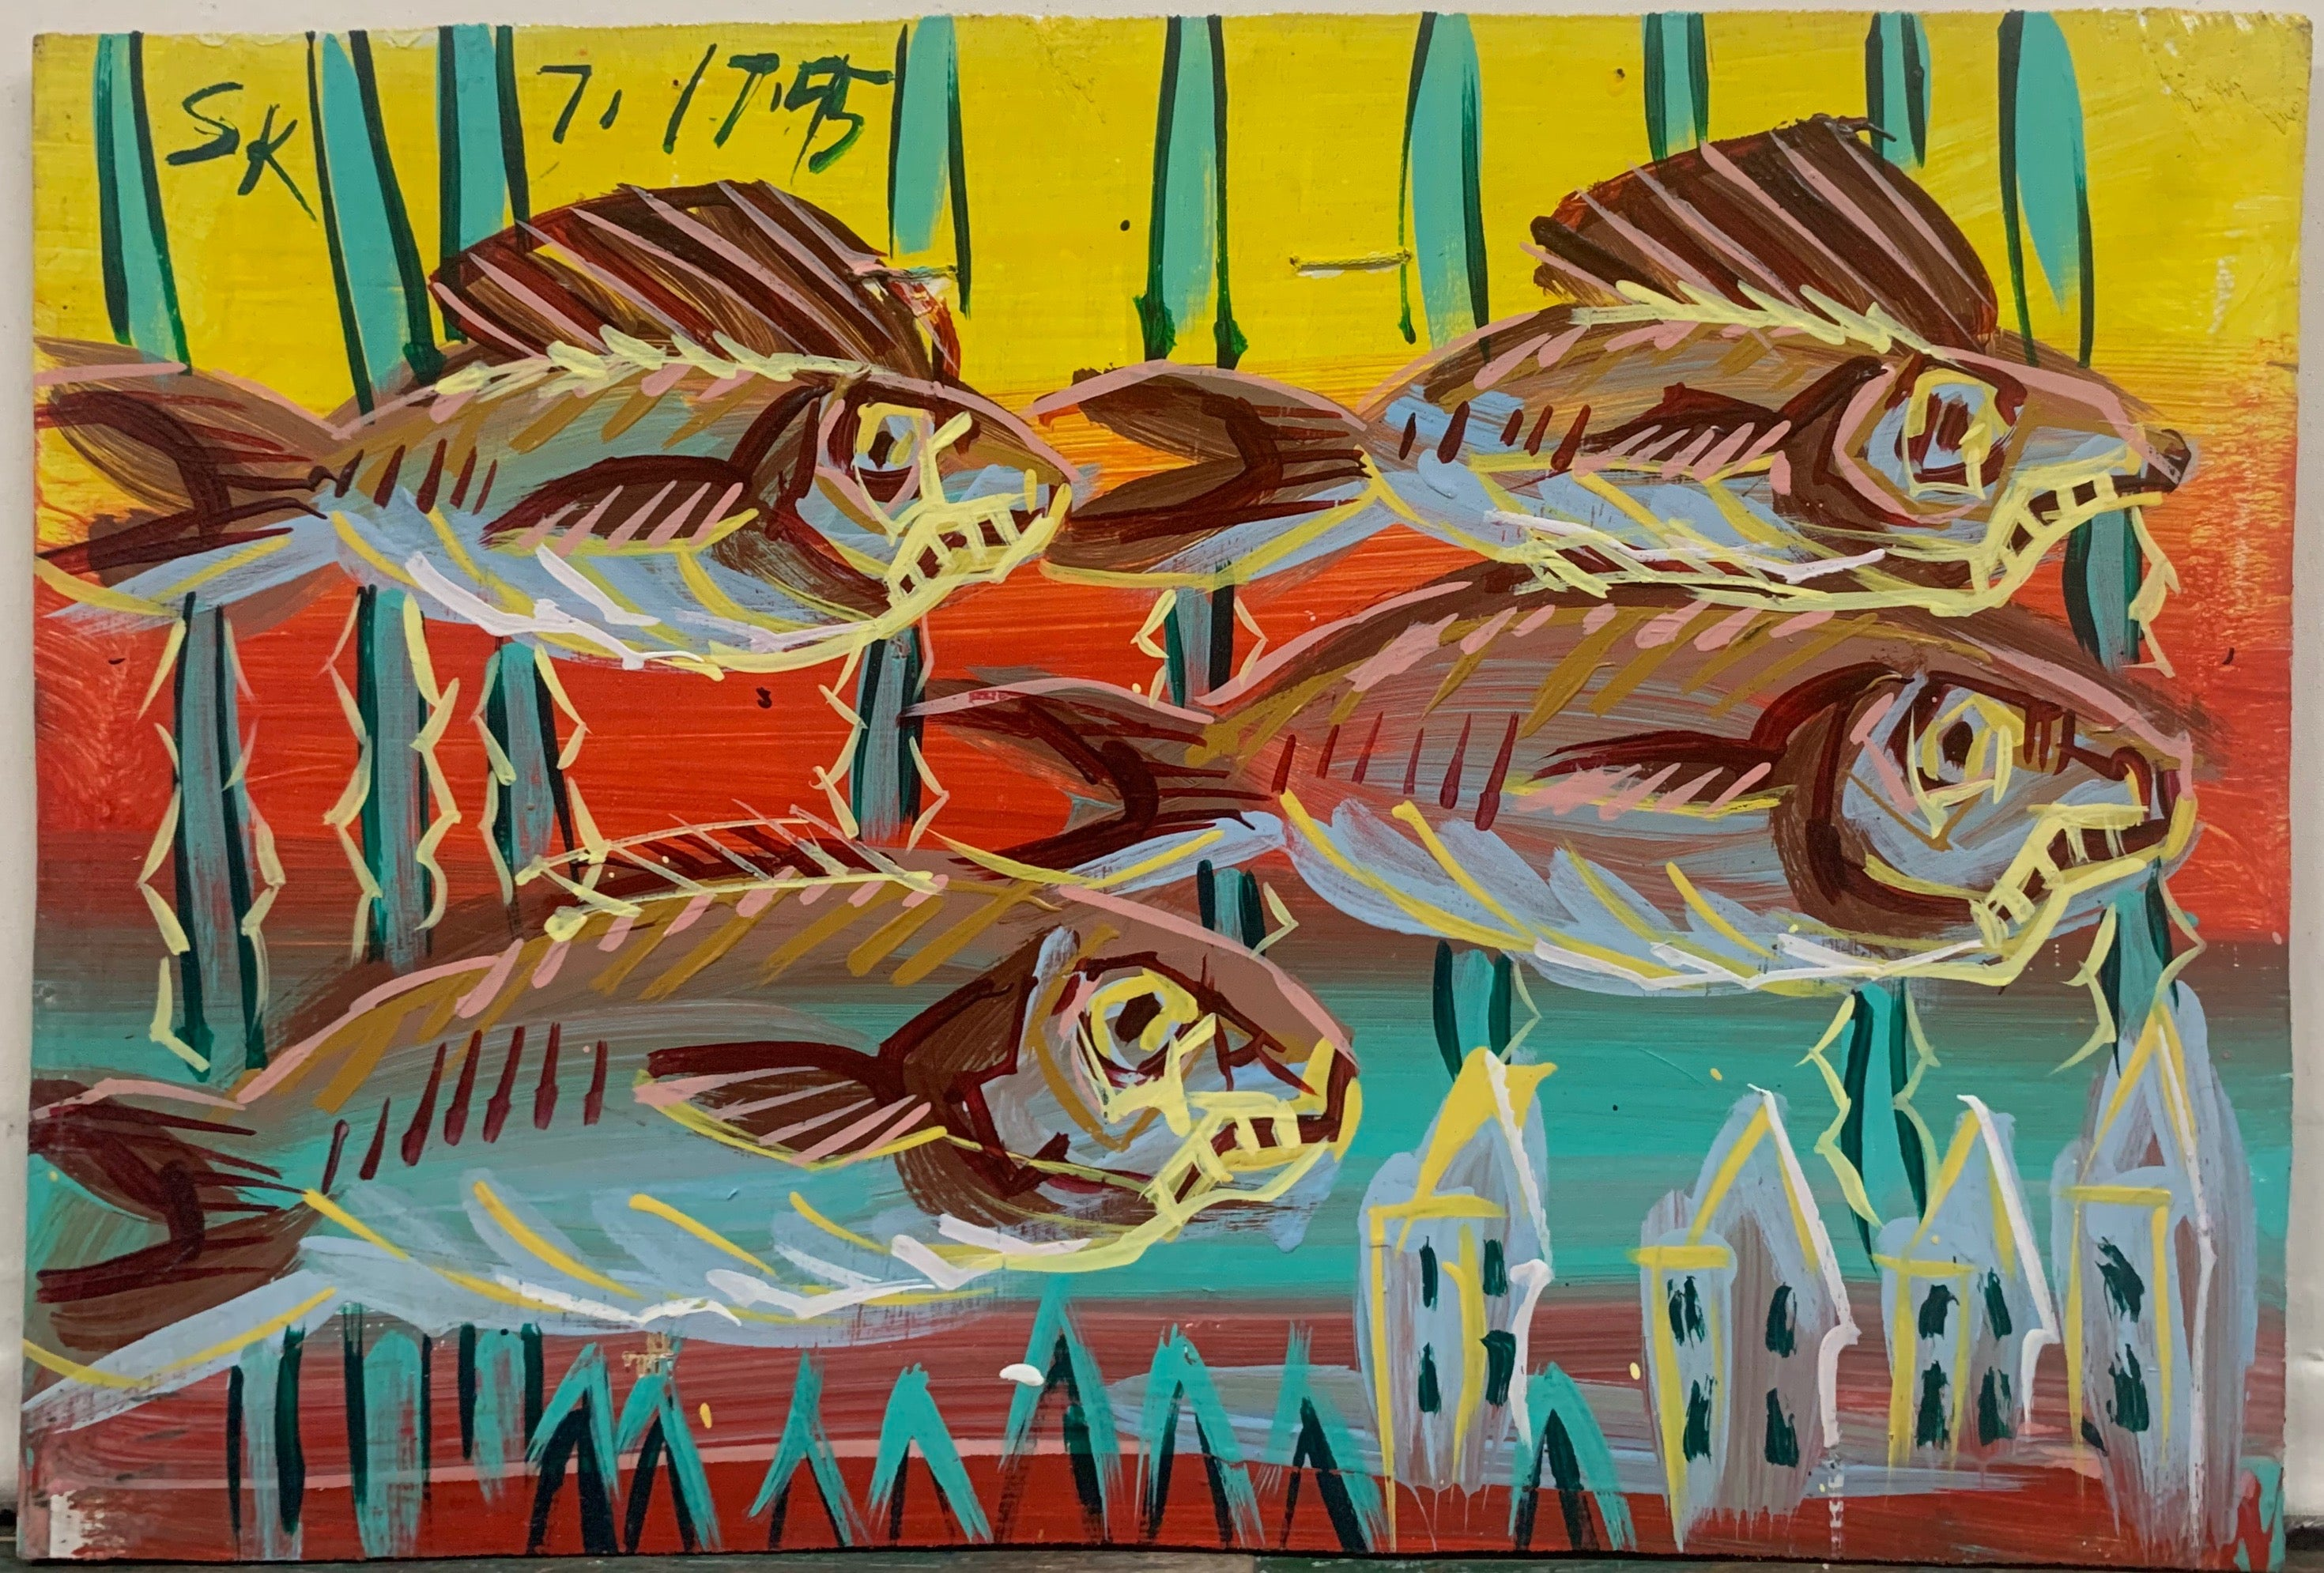 A Steve Keene painting of a school of fish swimming past houses underwater.